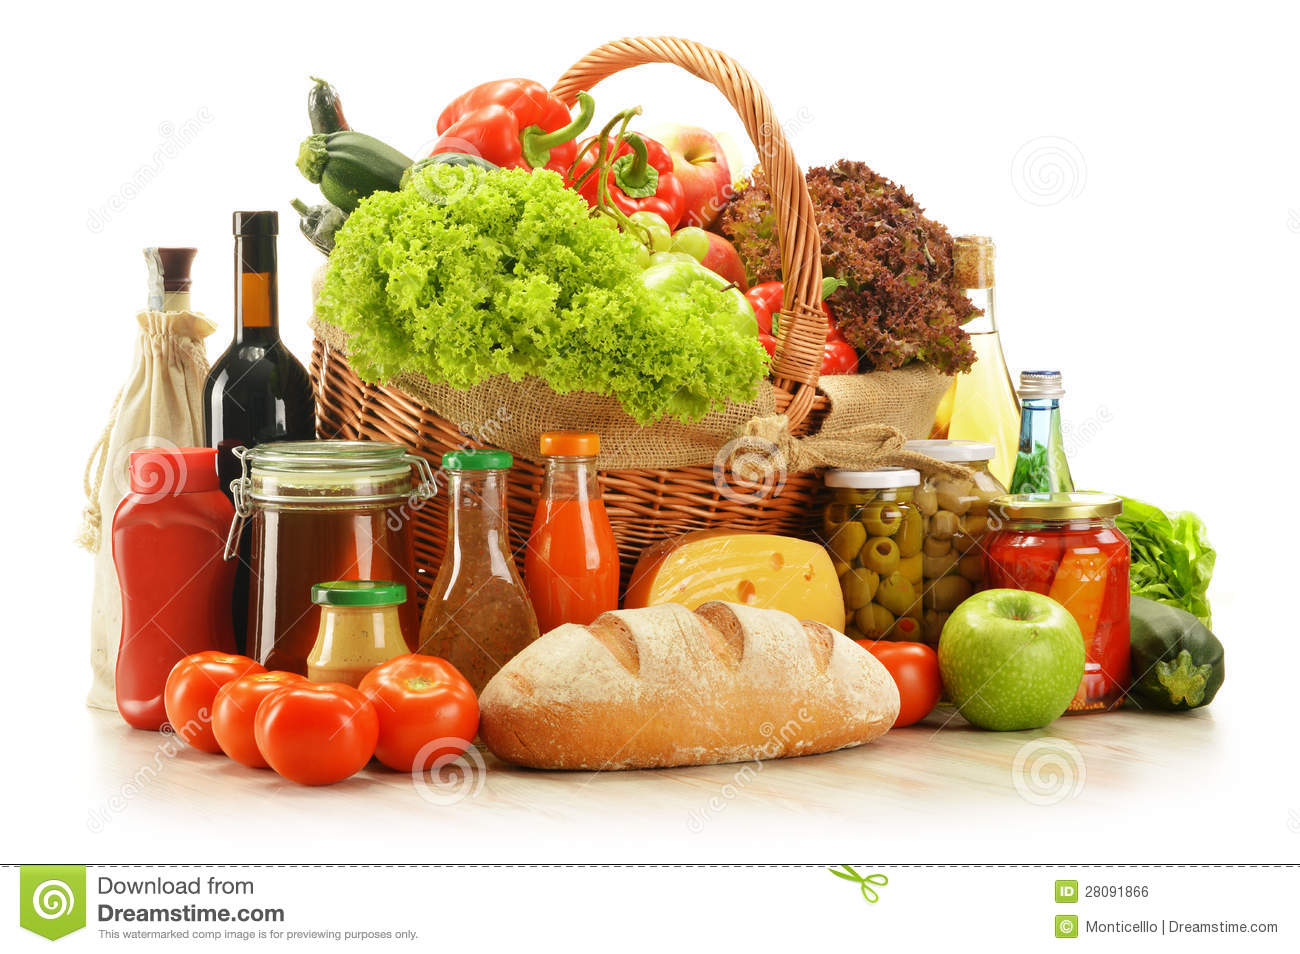 Shop Target for all your Grocery needs and find low prices on high quality produce and products. Order groceries online and have your groceries delivered same day, pick them up with Drive Up or Order Pickup, or even receive 5% off and free shipping by Subscribing.